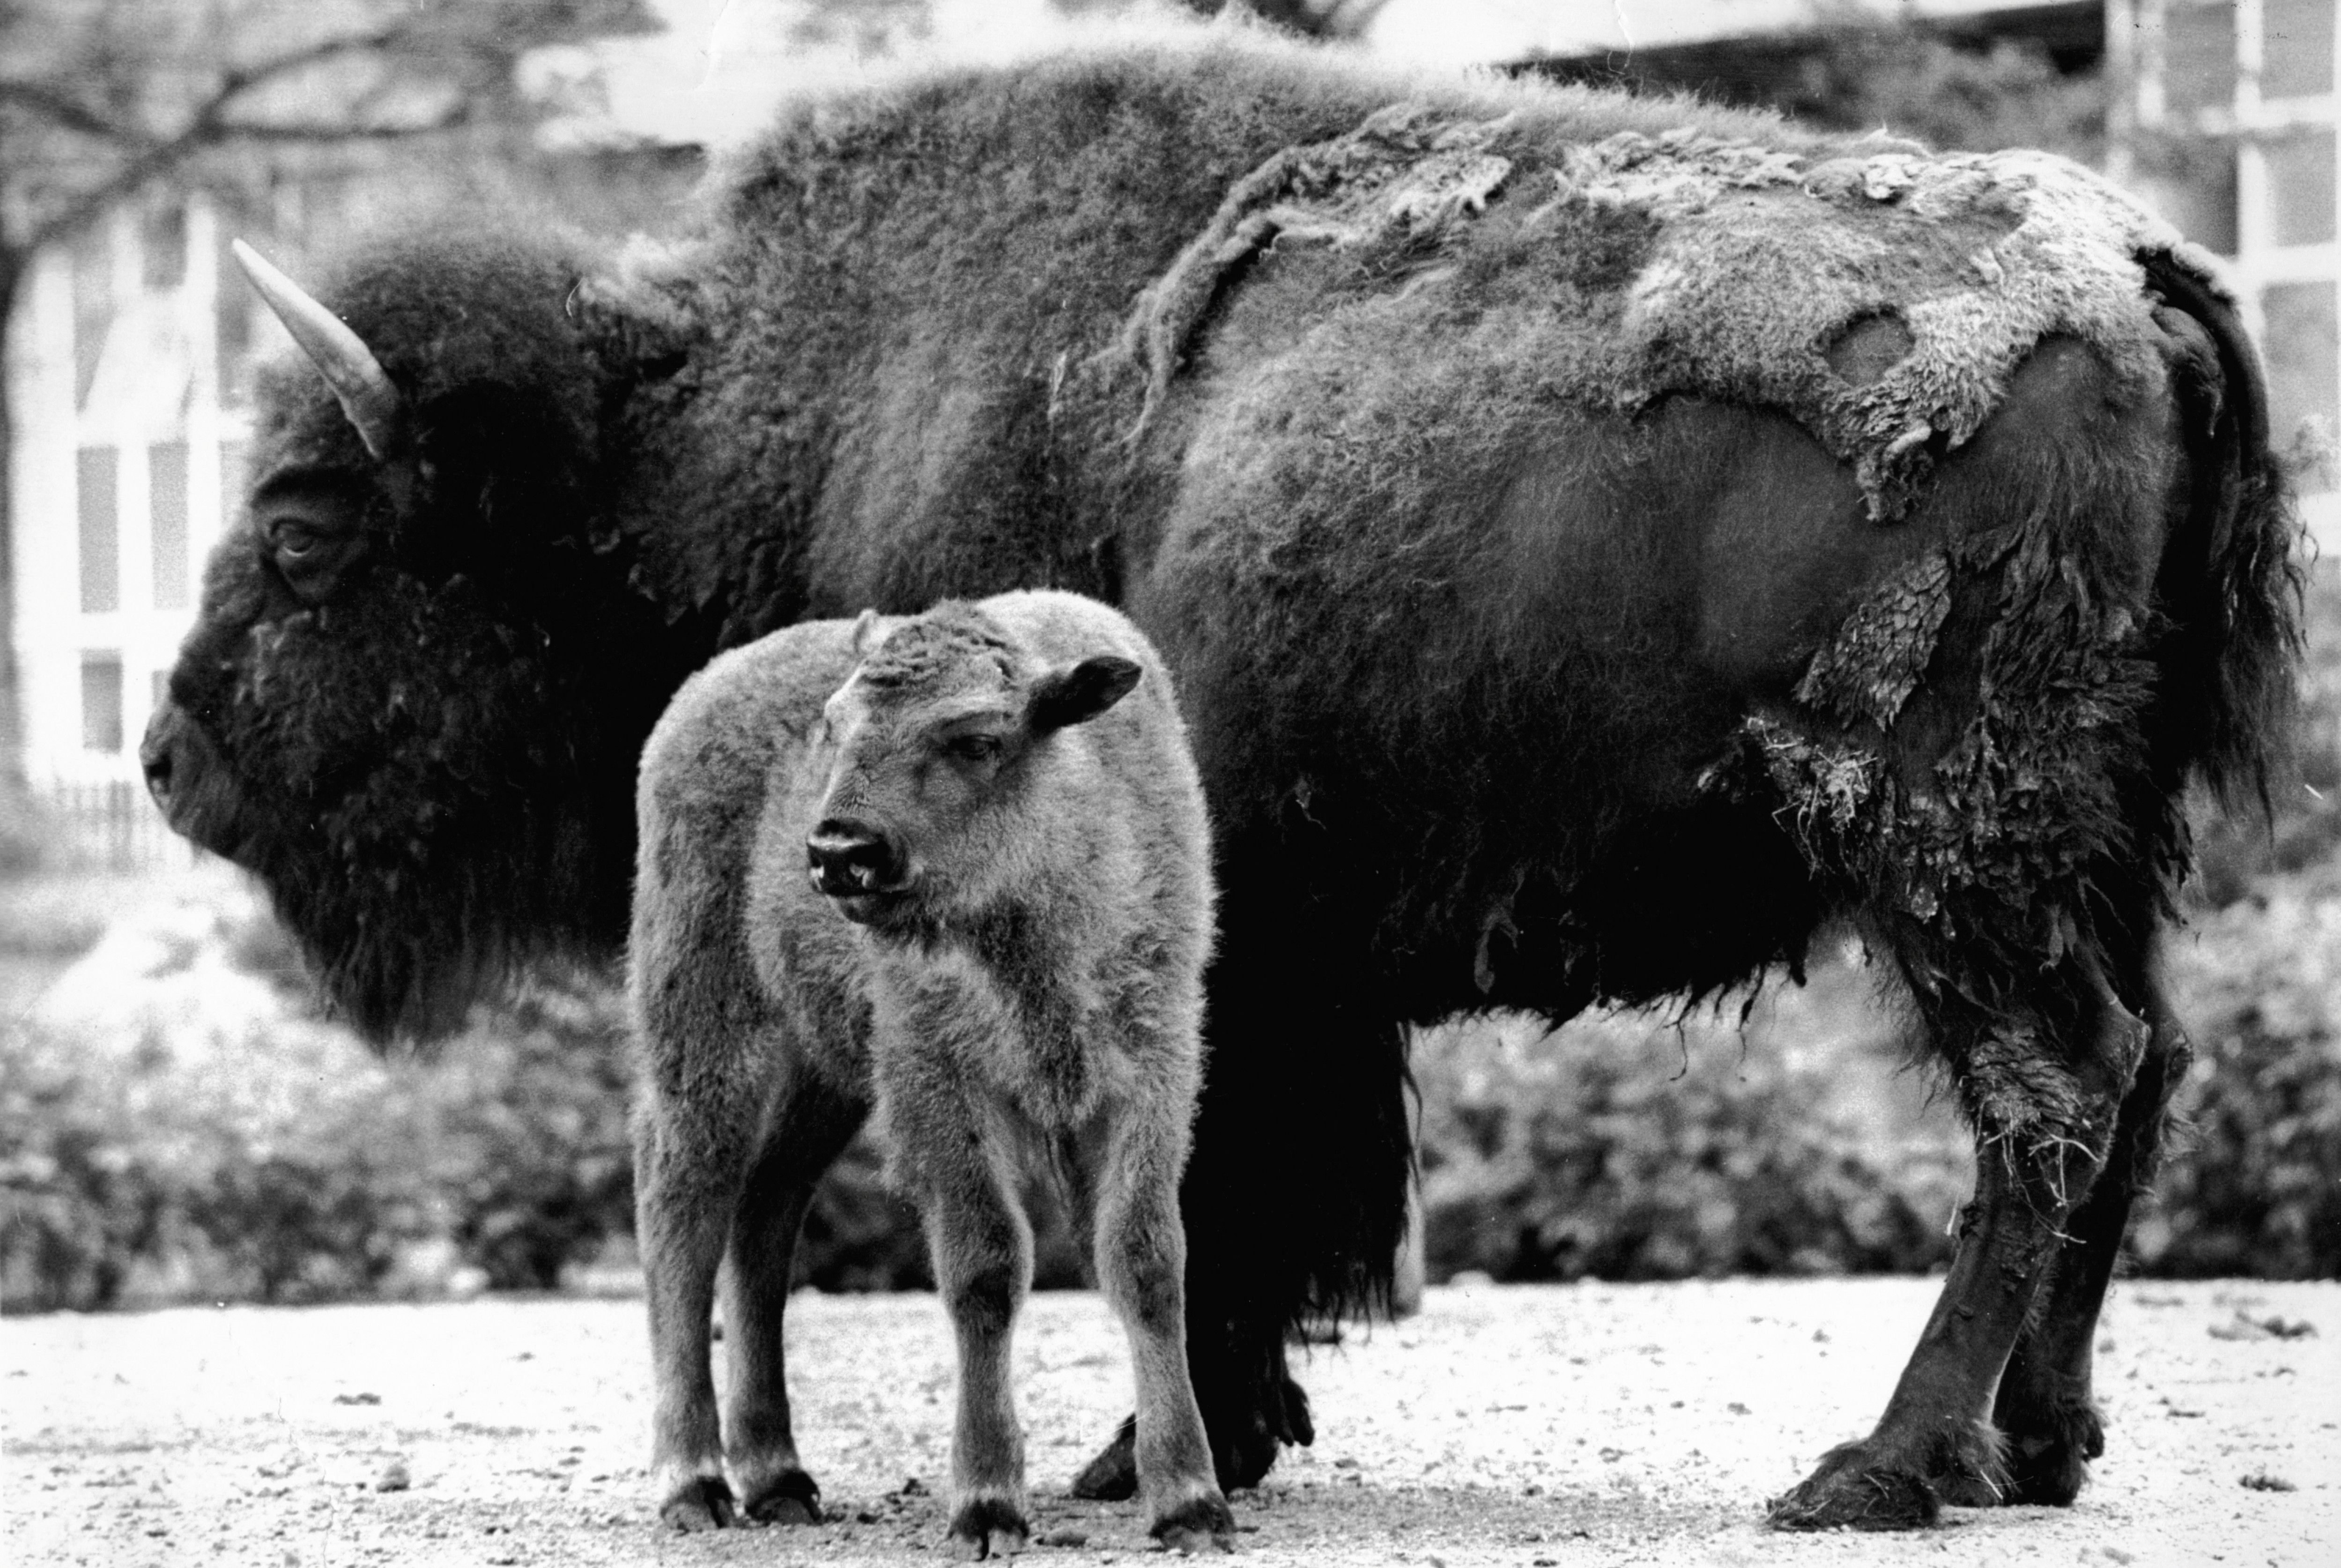 Mandatory Credit: Photo by Mike Maloney/ANL/Shutterstock (1415967a) North American Bison 'cherokee' With Her Three-week-old Calf 'apache' At London Zoo. North American Bison 'cherokee' With Her Three-week-old Calf 'apache' At London Zoo.